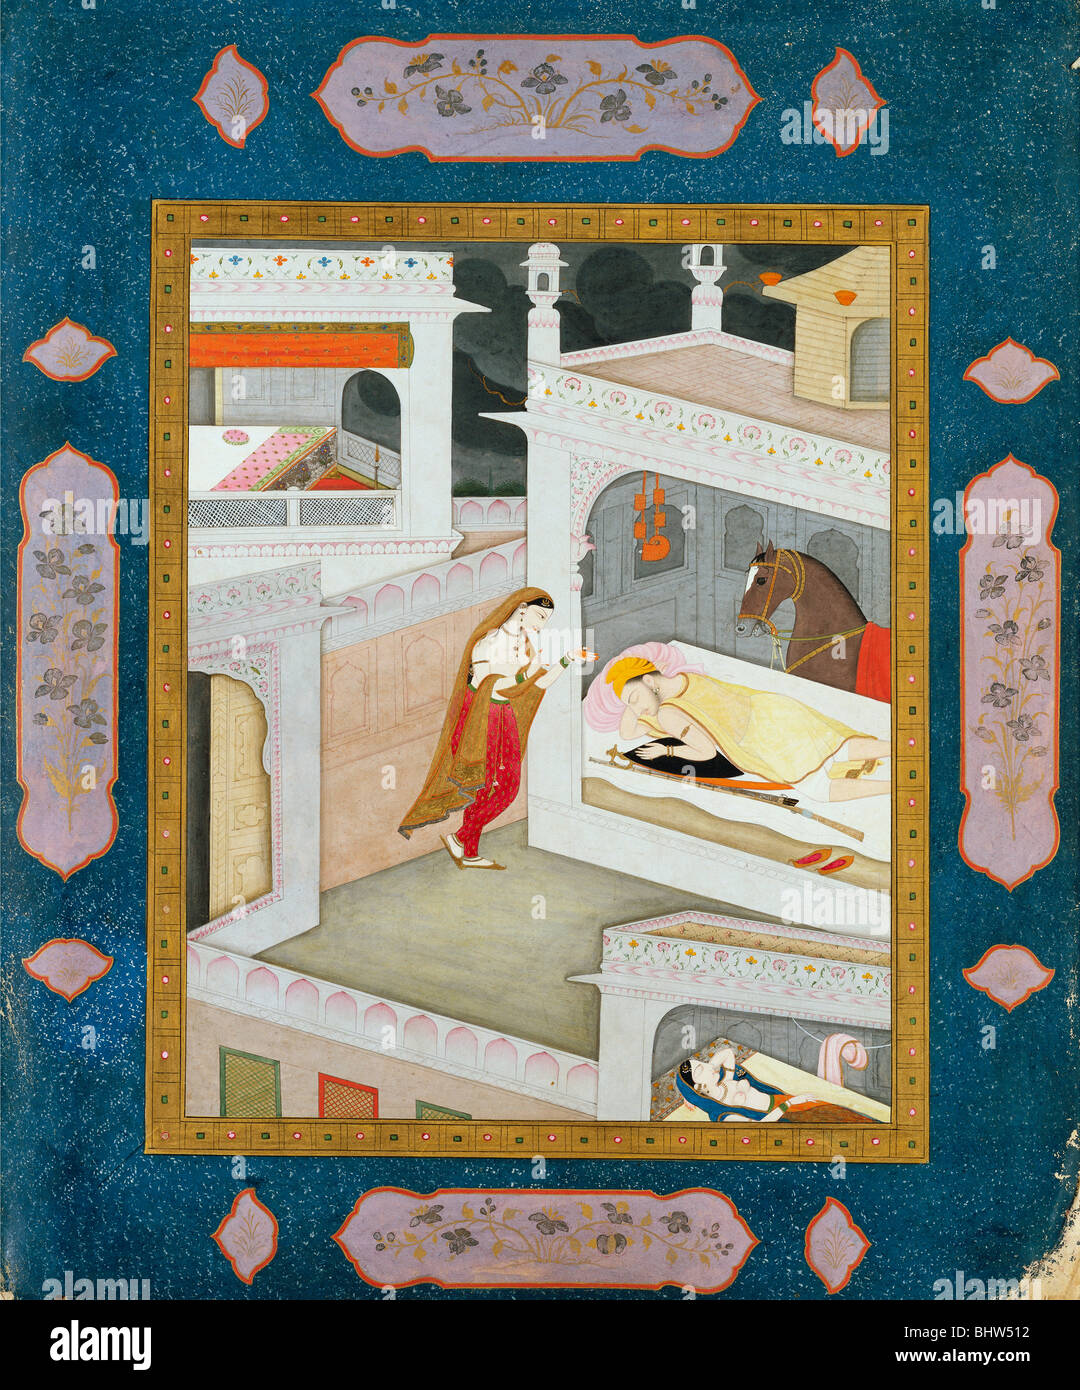 Lady standing by her sleeping lover, by The School of Sajnu. Mandi, Punjab Hills, India, early 19th century - Stock Image